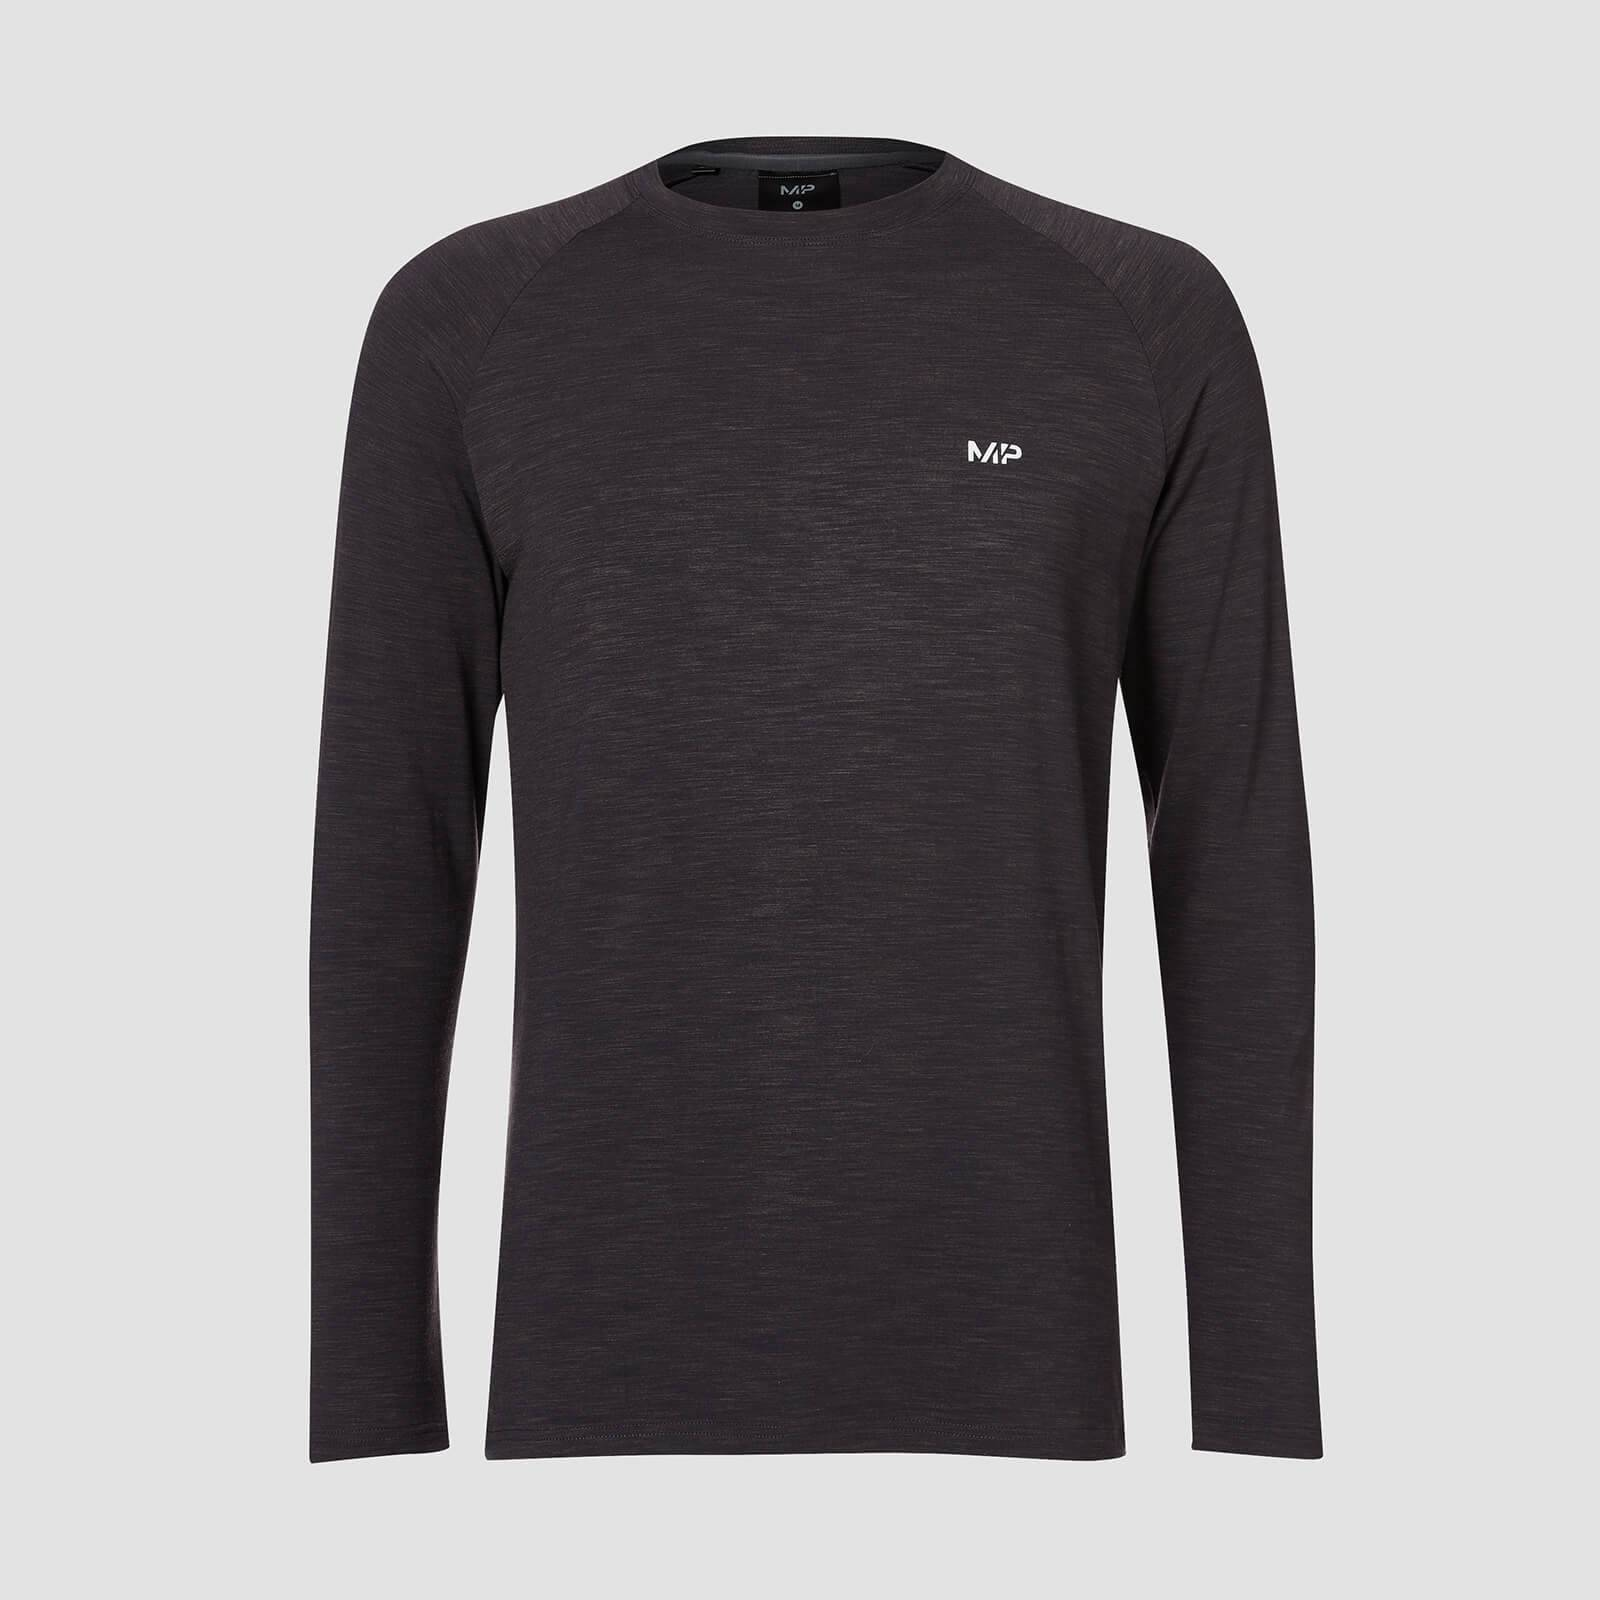 Myprotein T-shirt Performance Long-Sleeve MP - Nero mélange - XS